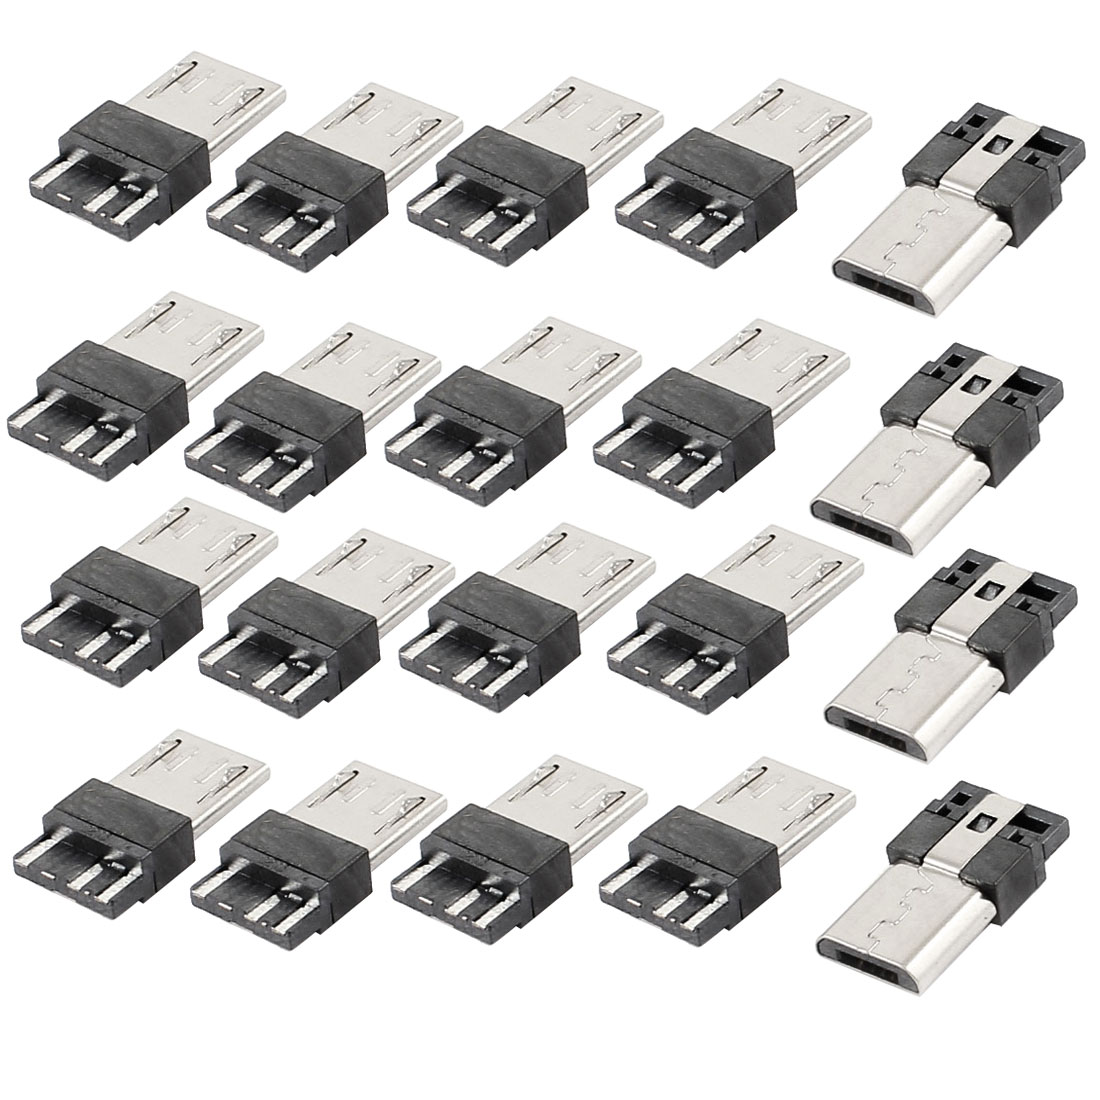 20 Pieces Micro USB B Type 5-Pin Male Solder Jack Plug Connectors